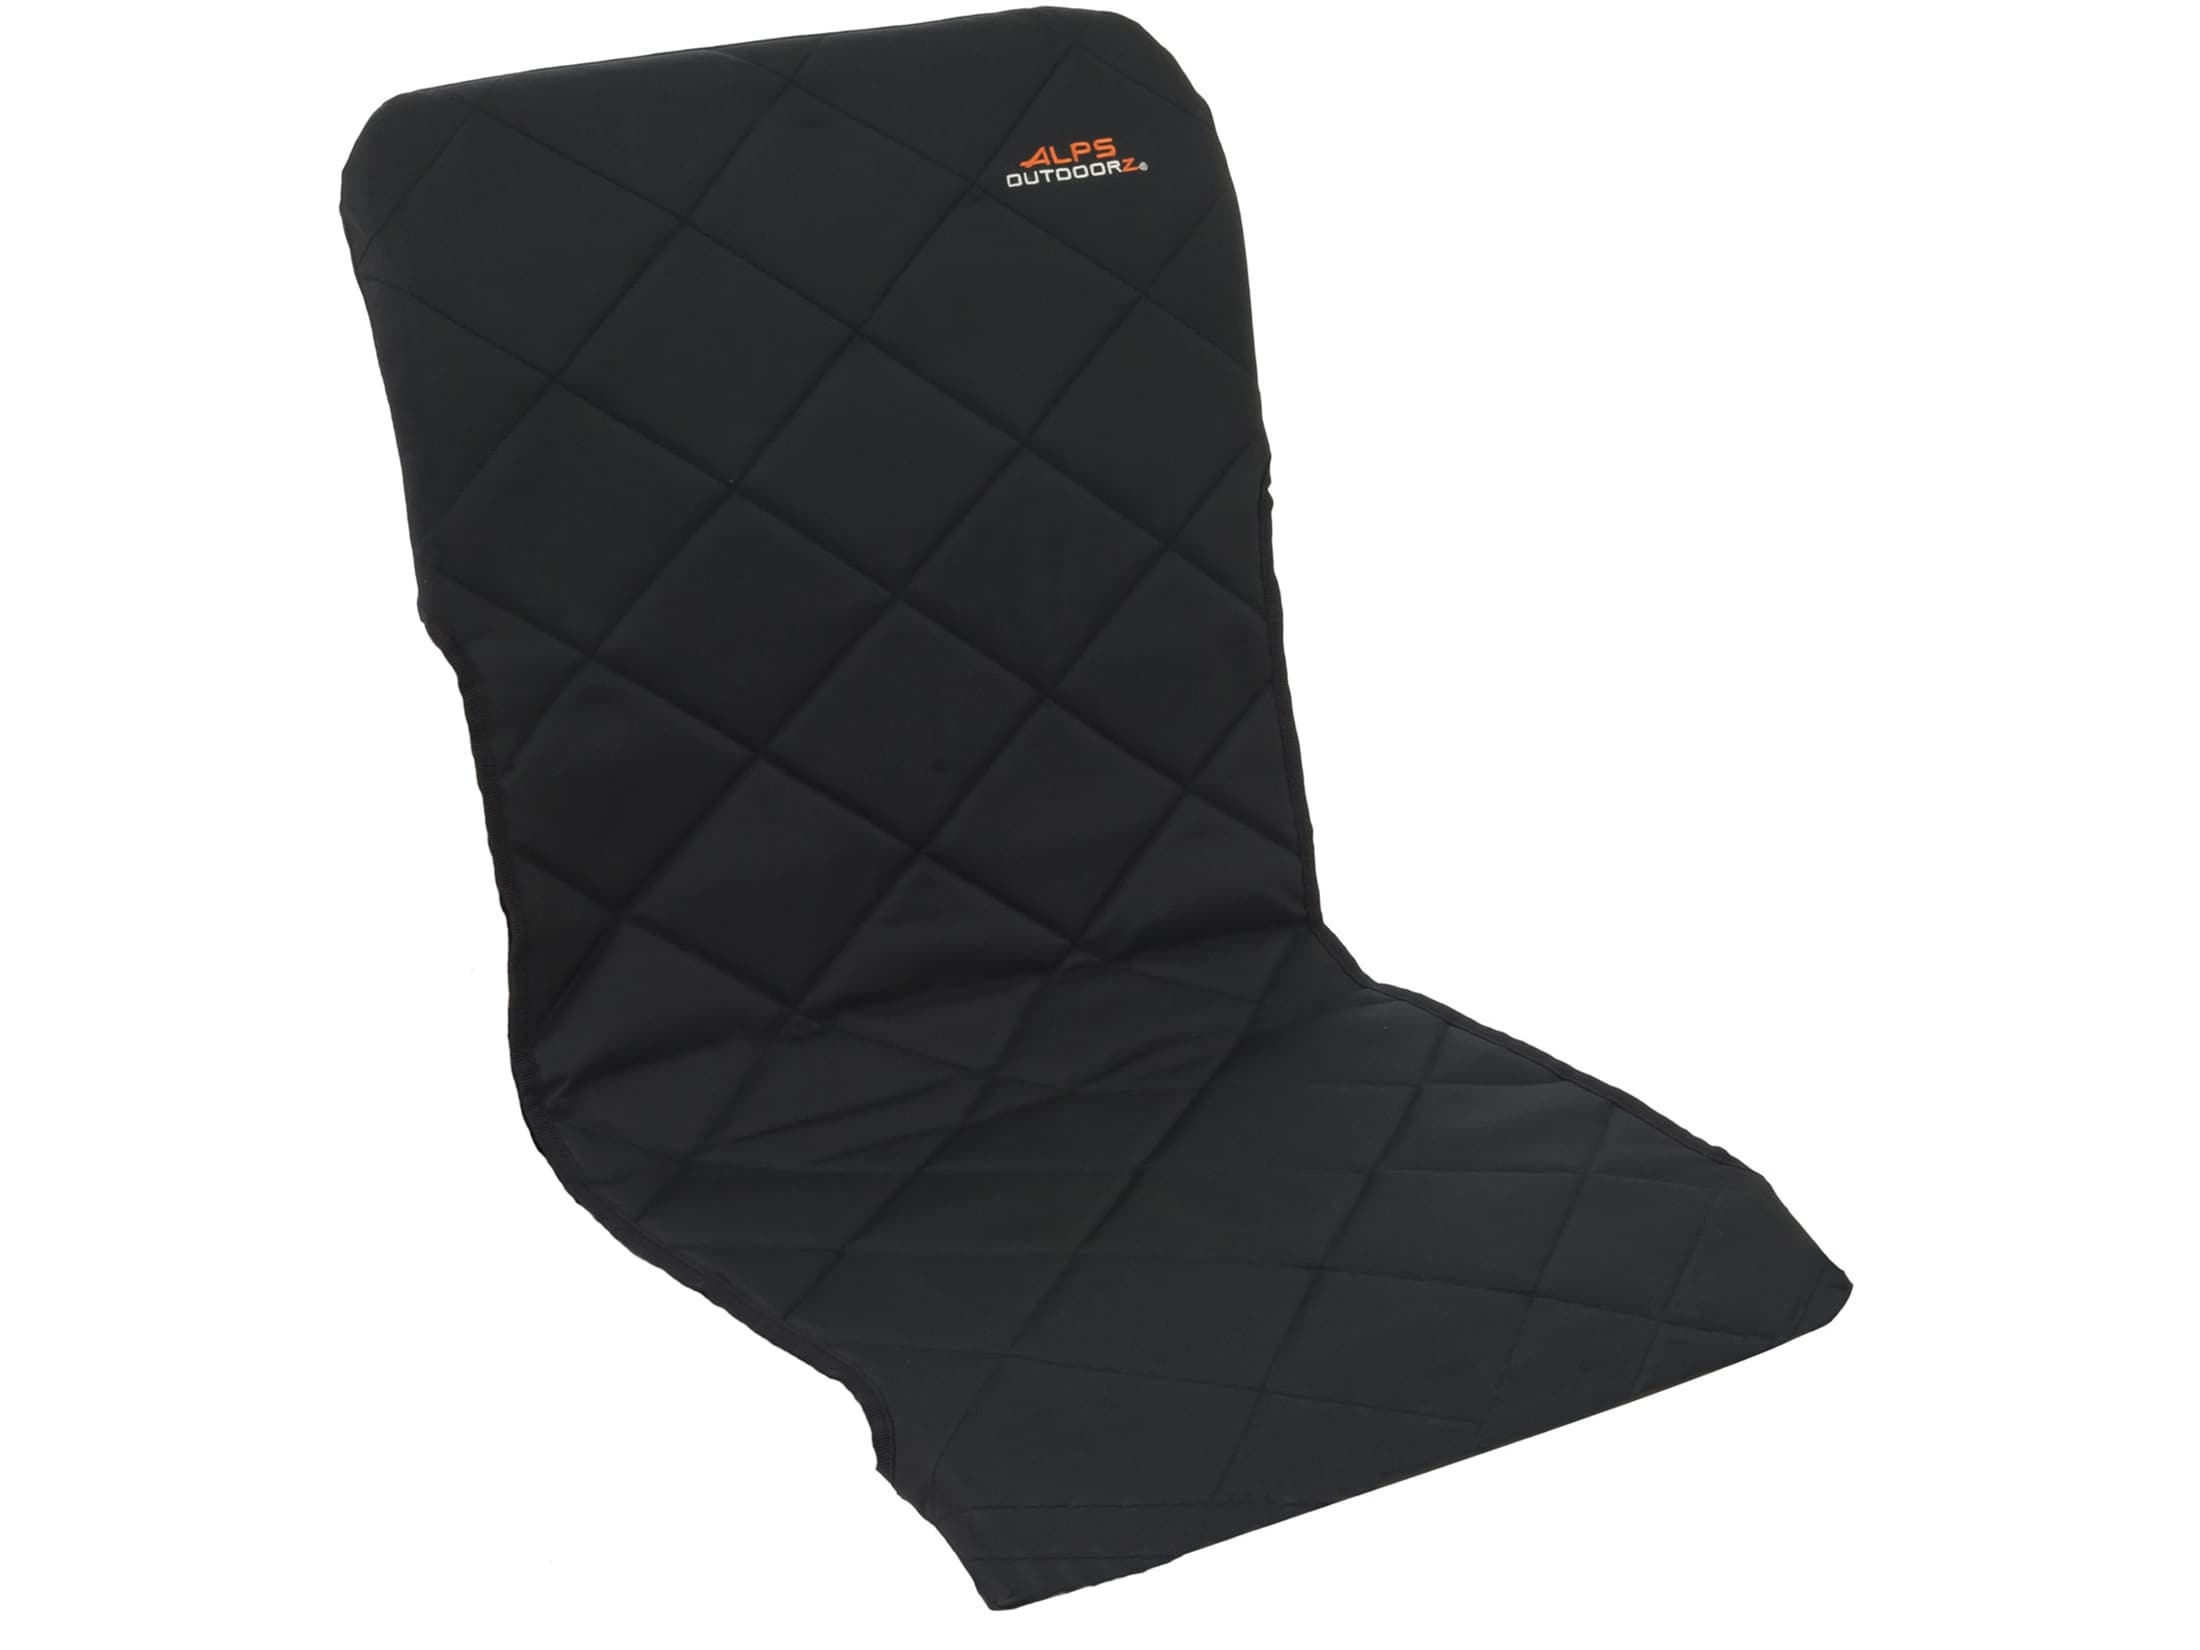 Incredible Alps Outdoorz Stealth Hunter Chair Cover Black Cjindustries Chair Design For Home Cjindustriesco